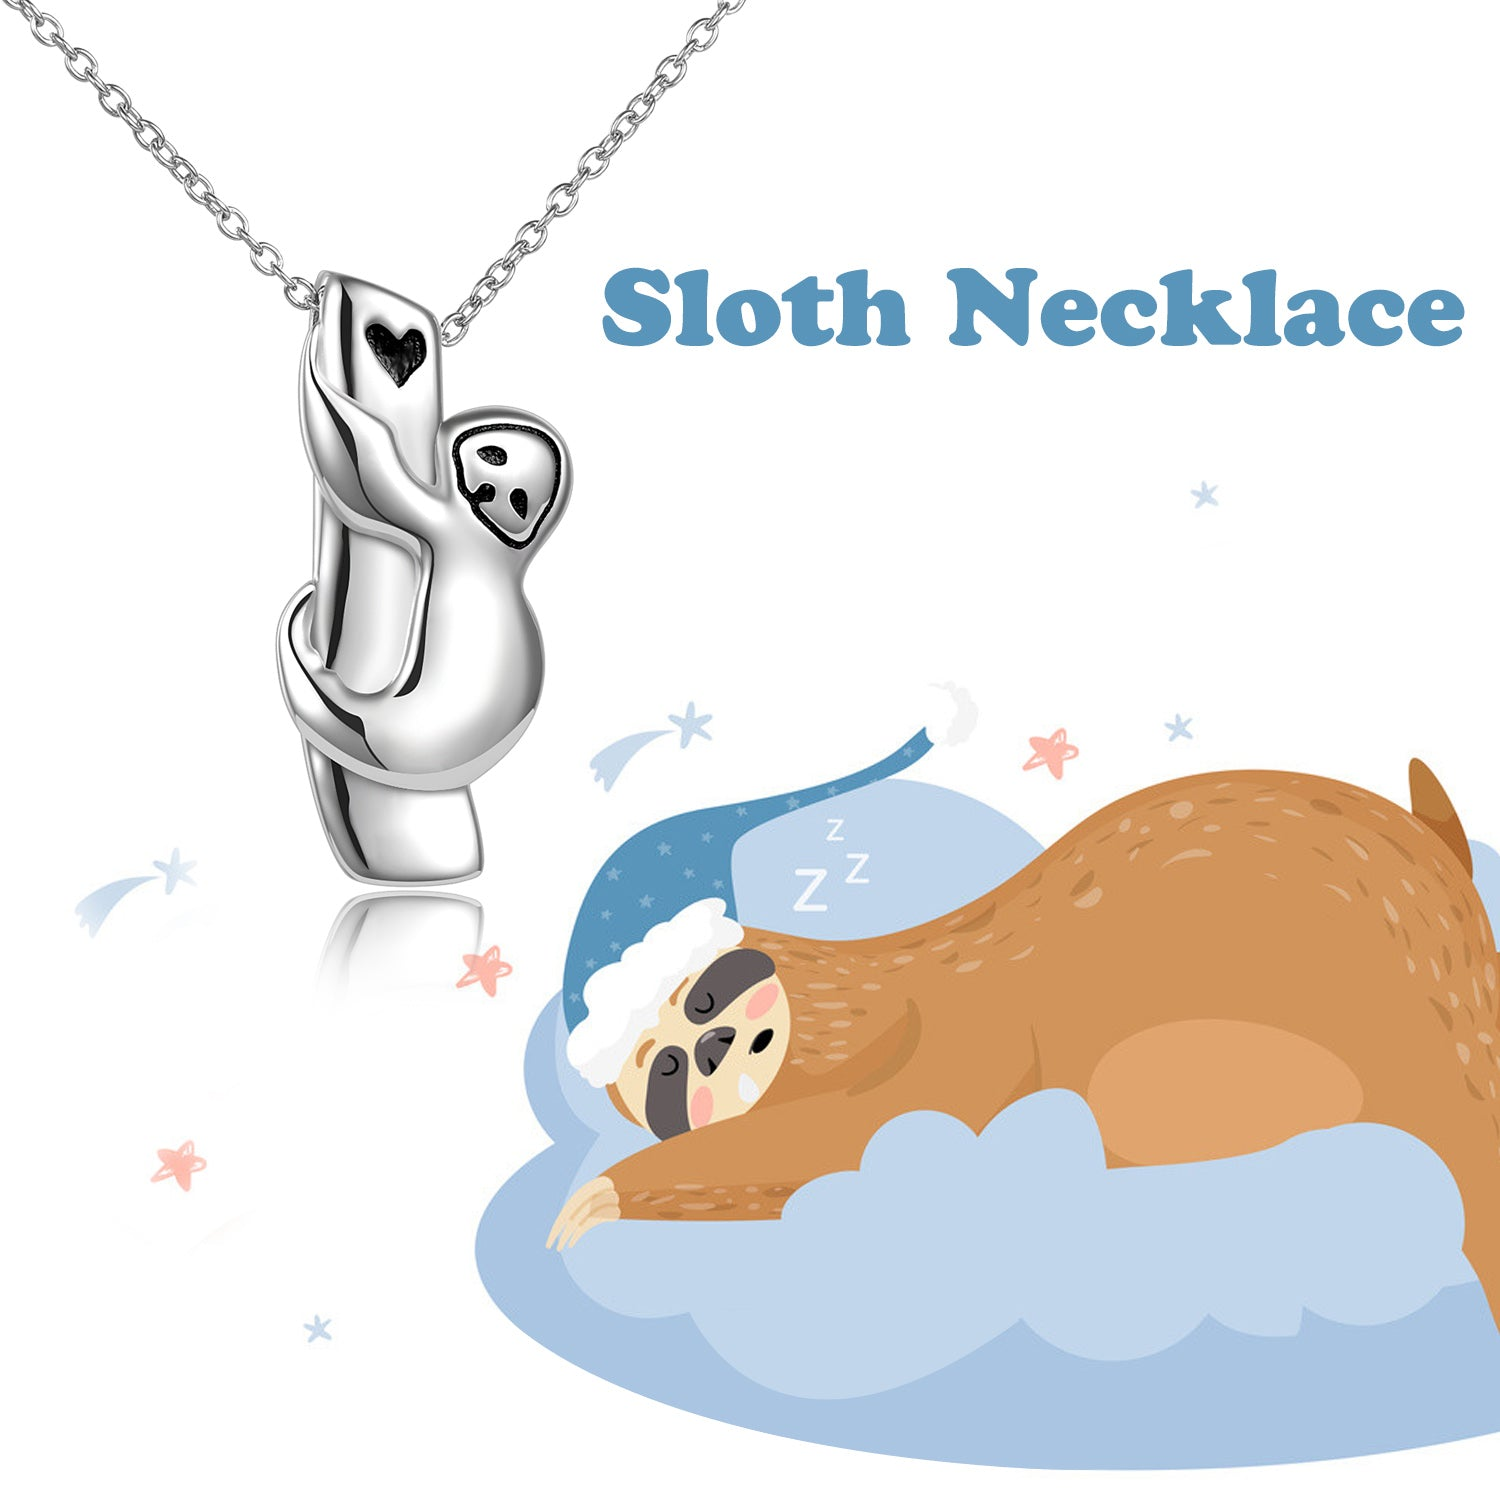 925 Sterling Silver Tree Sloth Necklace, Silver Sloth Pendant